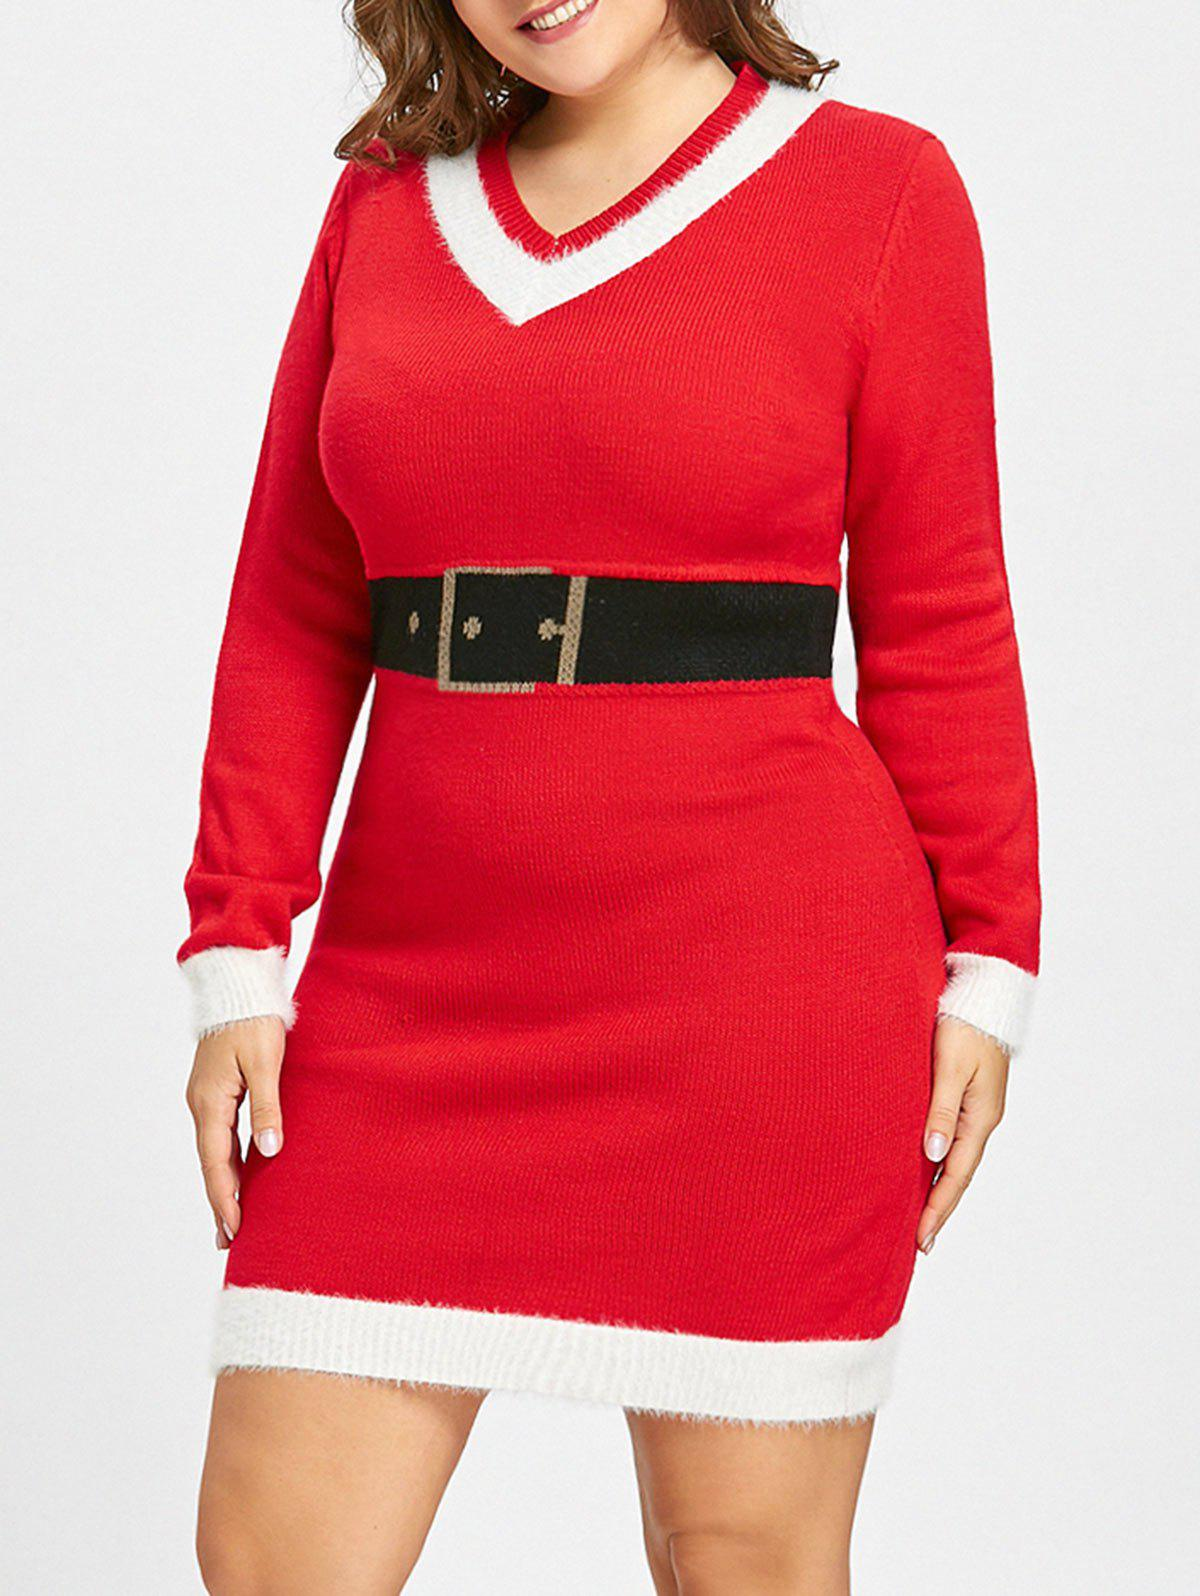 Christmas Plus Size Faux Belt Jacquard SweaterWOMEN<br><br>Size: 5XL; Color: RED; Type: Pullovers; Material: Acrylic; Sleeve Length: Full; Collar: V-Neck; Style: Fashion; Season: Fall,Winter; Pattern Type: Others; Weight: 0.5300kg; Package Contents: 1 x Sweater;